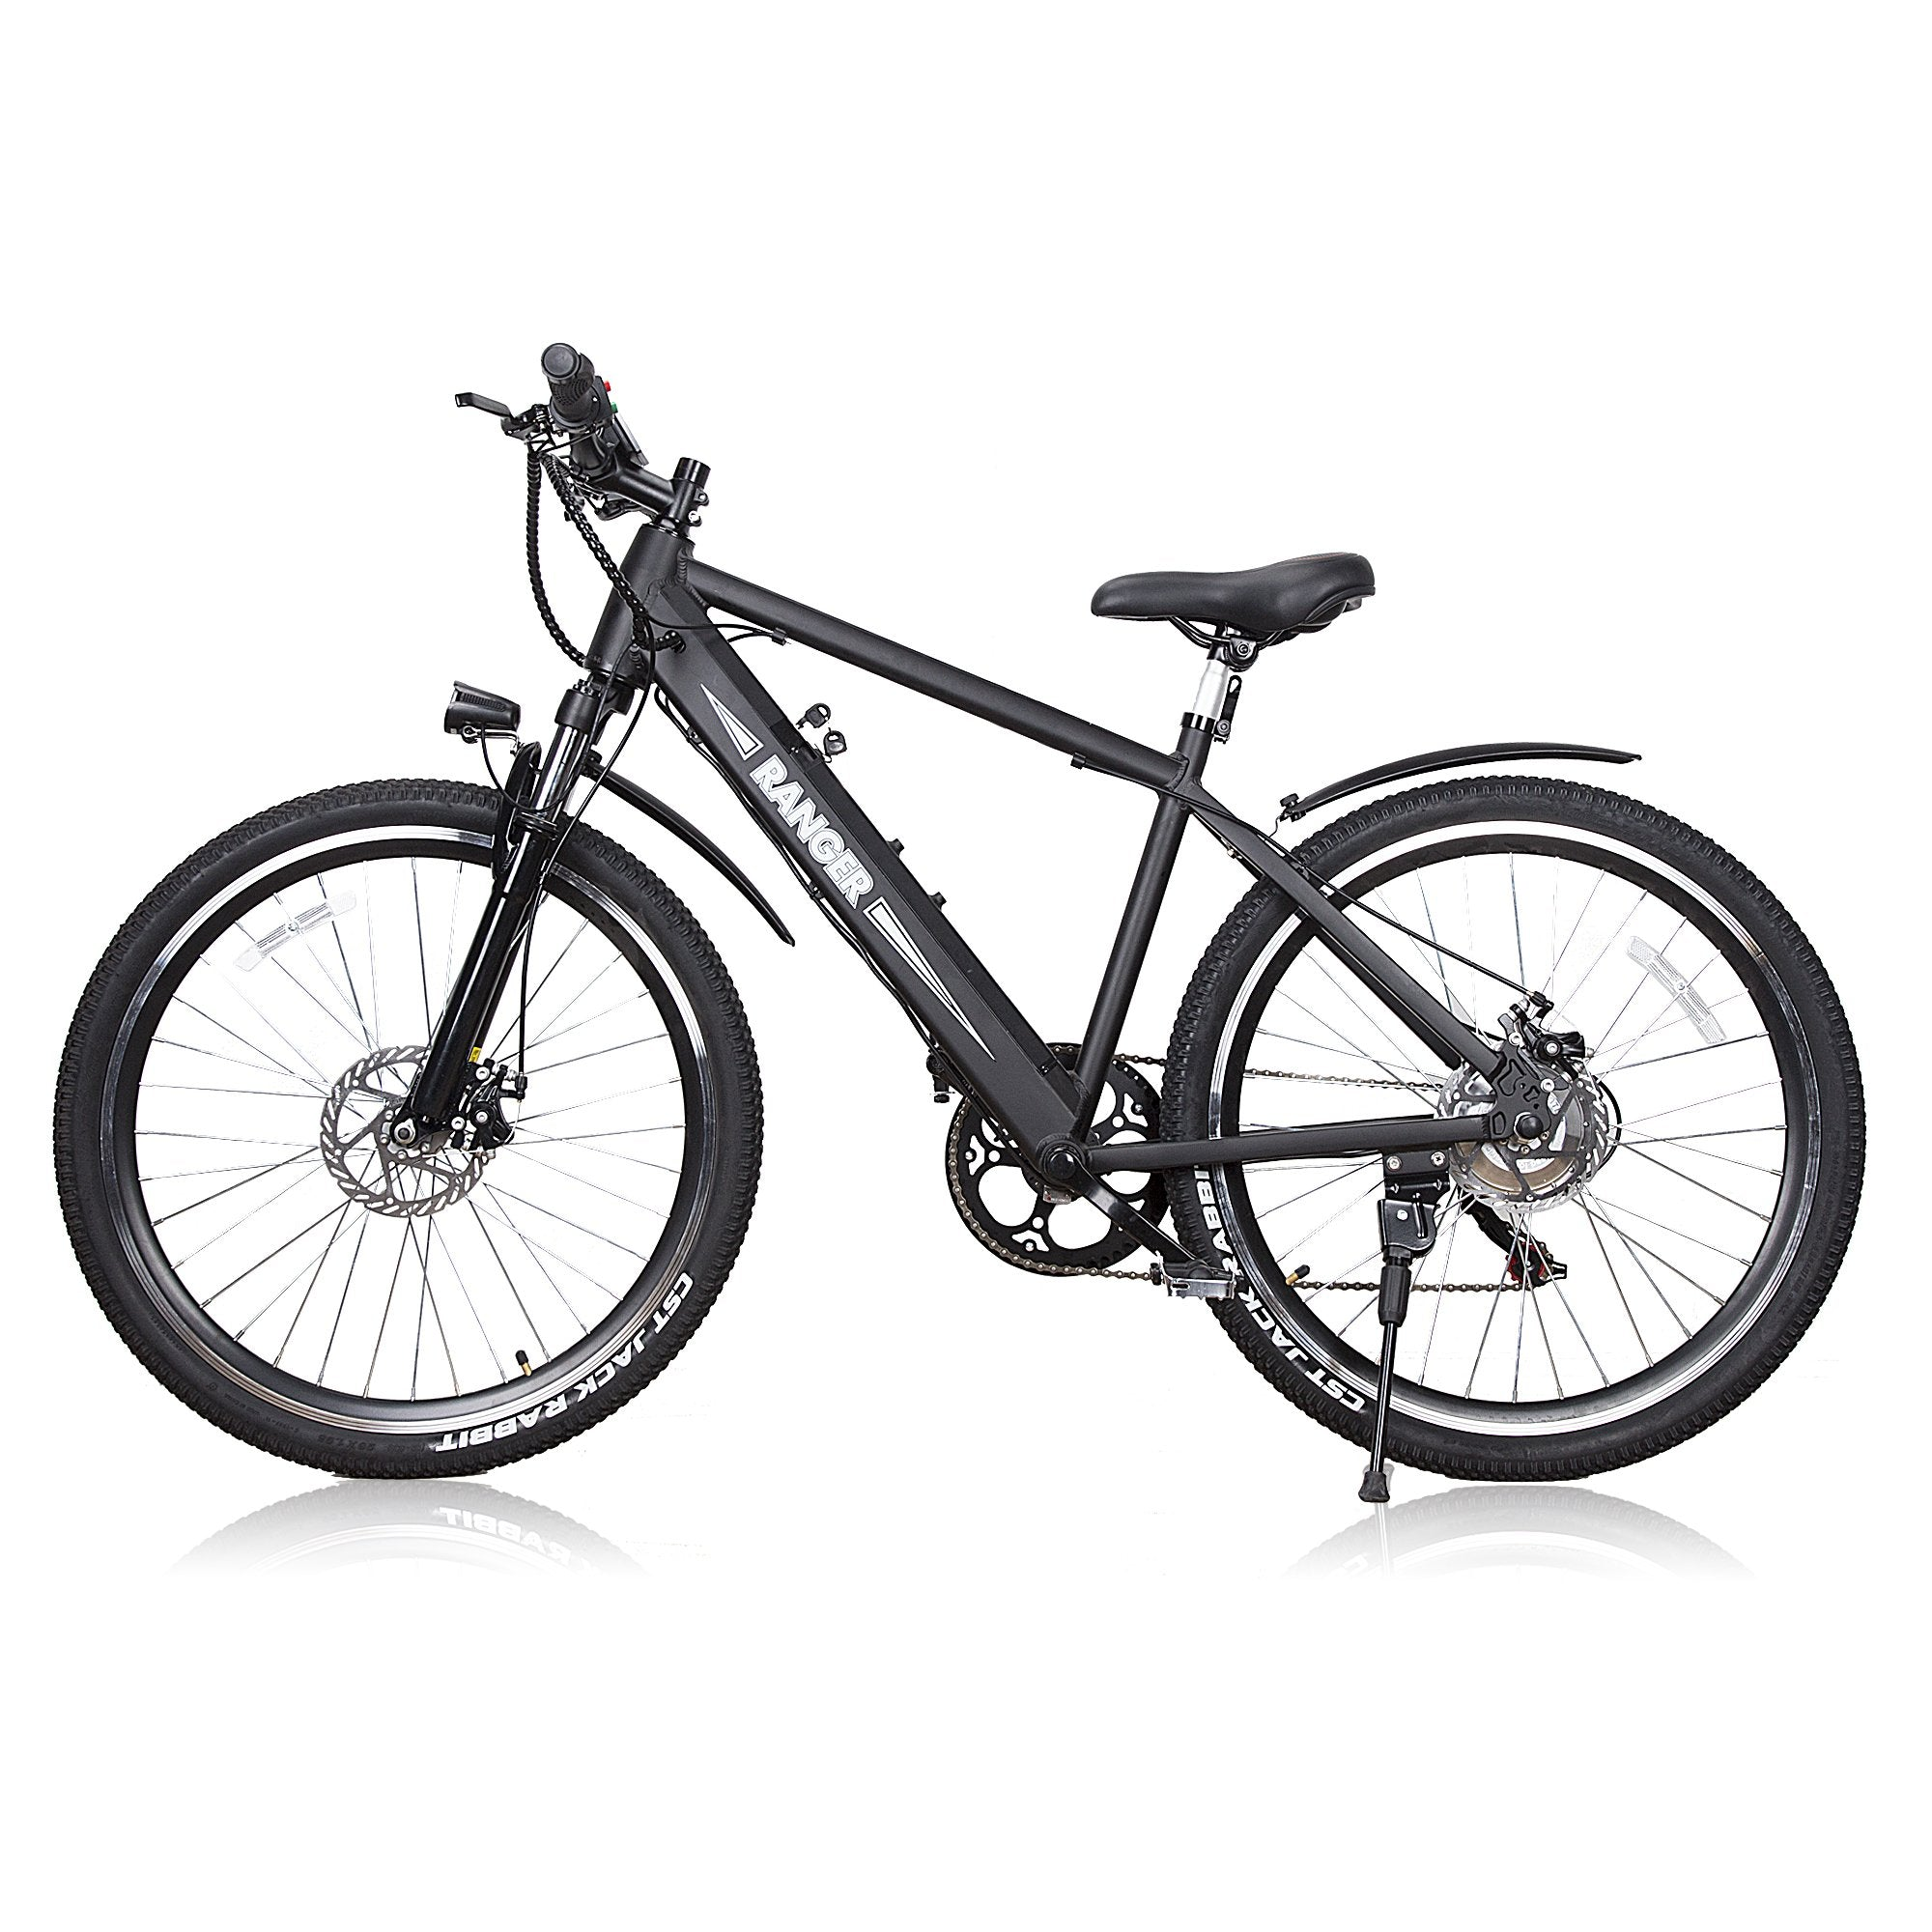 Nakto 300w Electric Mountain Bike Ranger